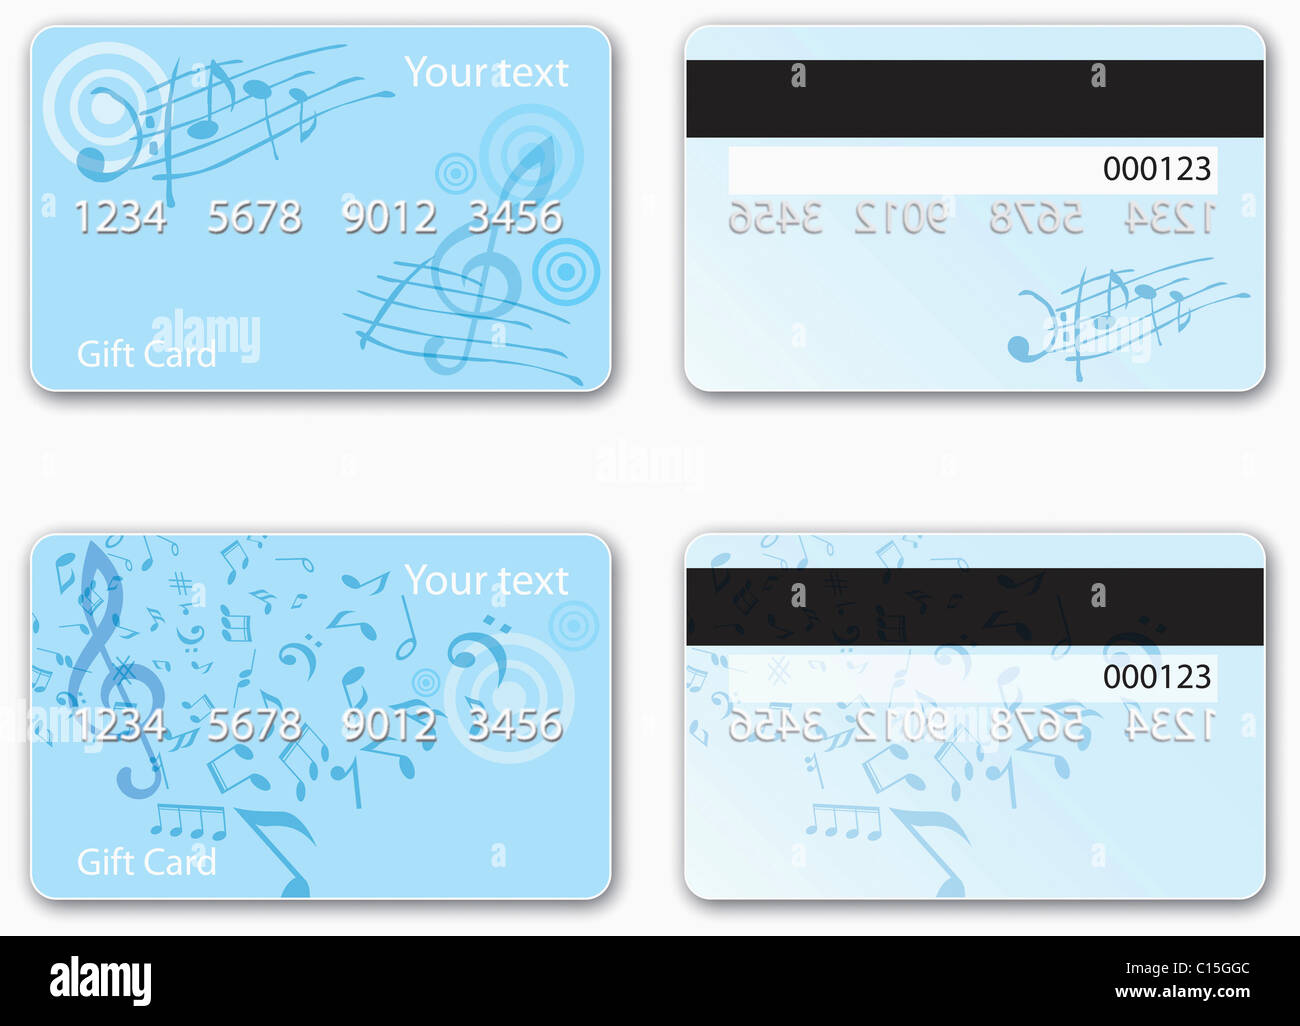 various types of credit card design - Stock Image